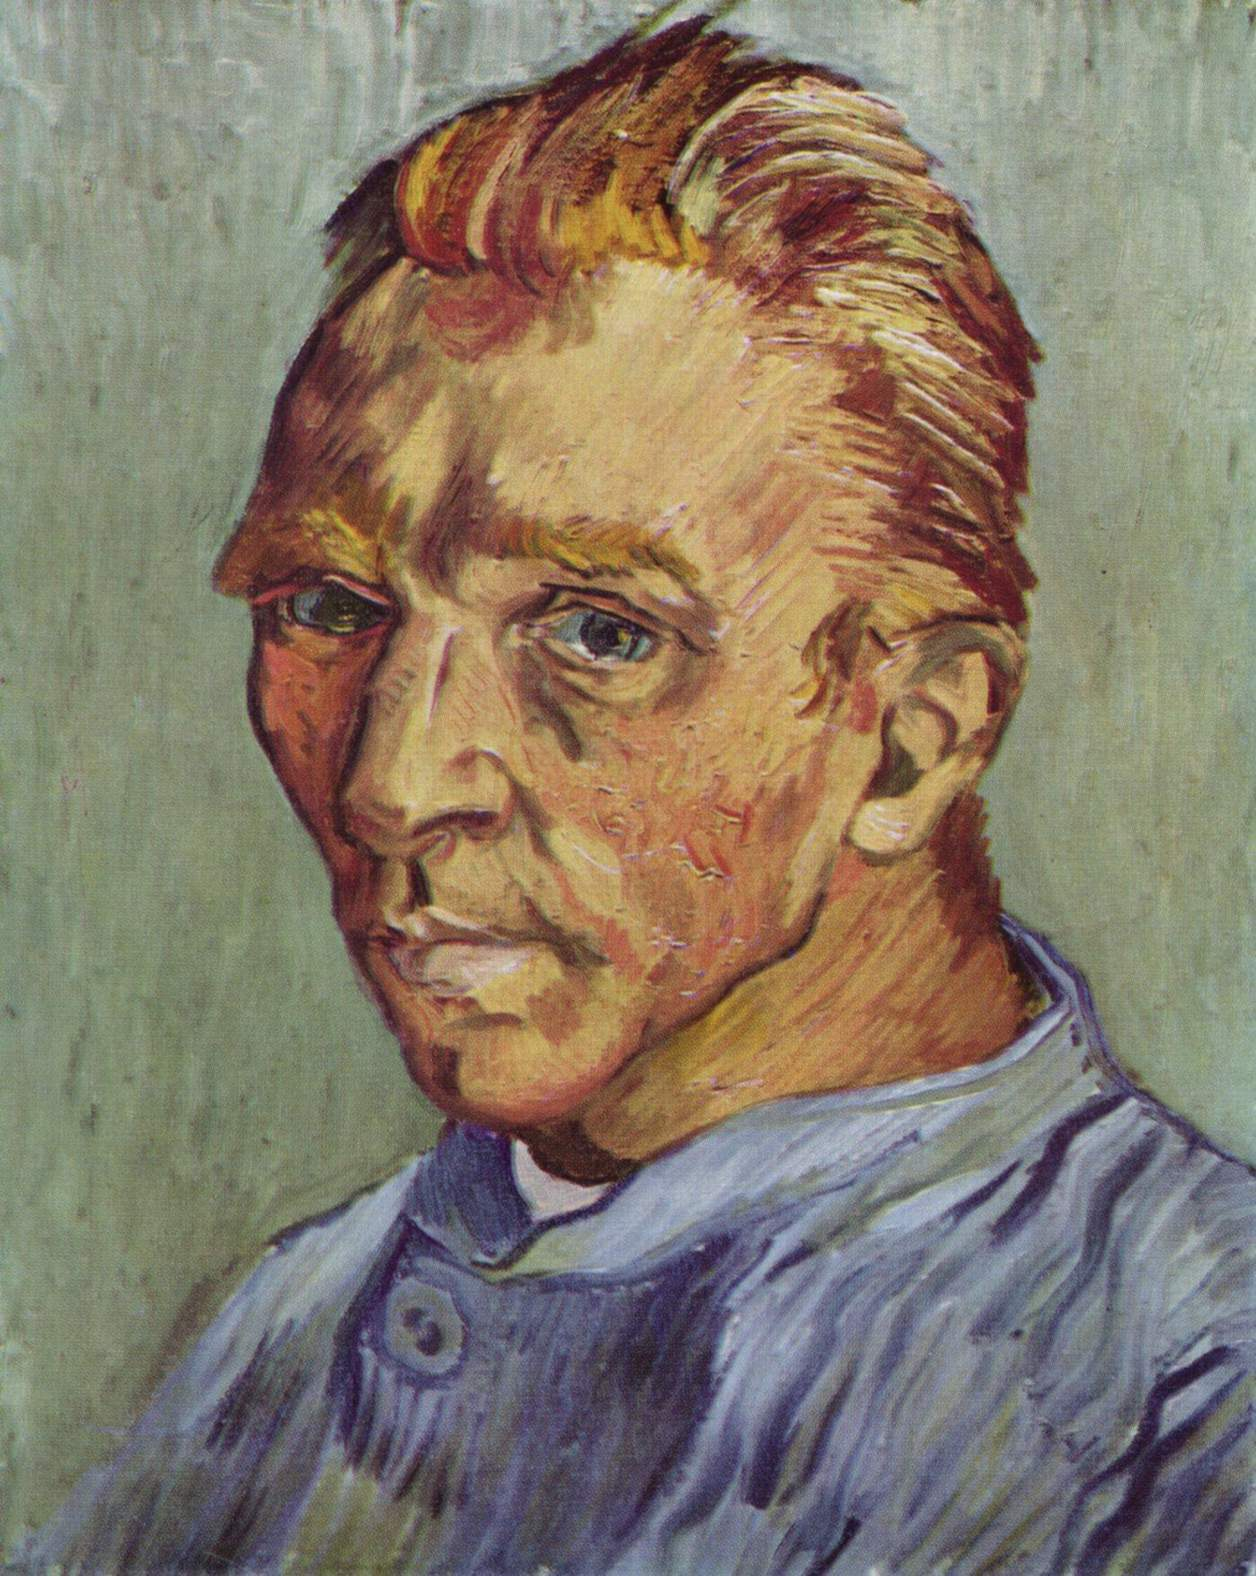 nike shox ups tb chaussures de basket-ball - Portraits of Vincent van Gogh - Wikipedia, the free encyclopedia